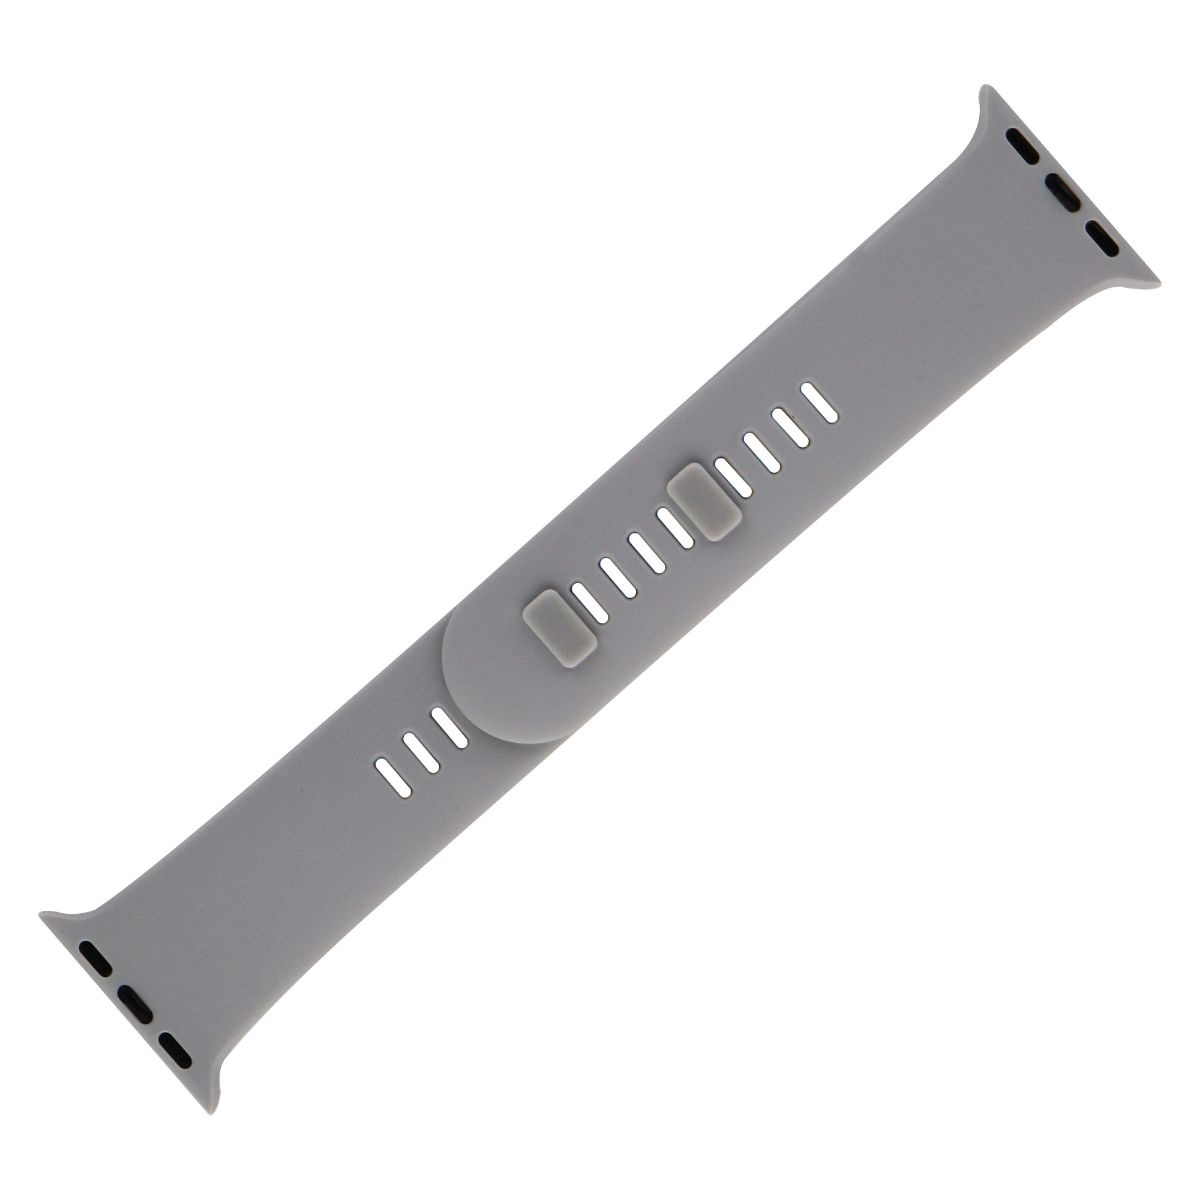 Sport Band Silicone Watch Band for Apple Watch 38mm - Gray - WESC03802